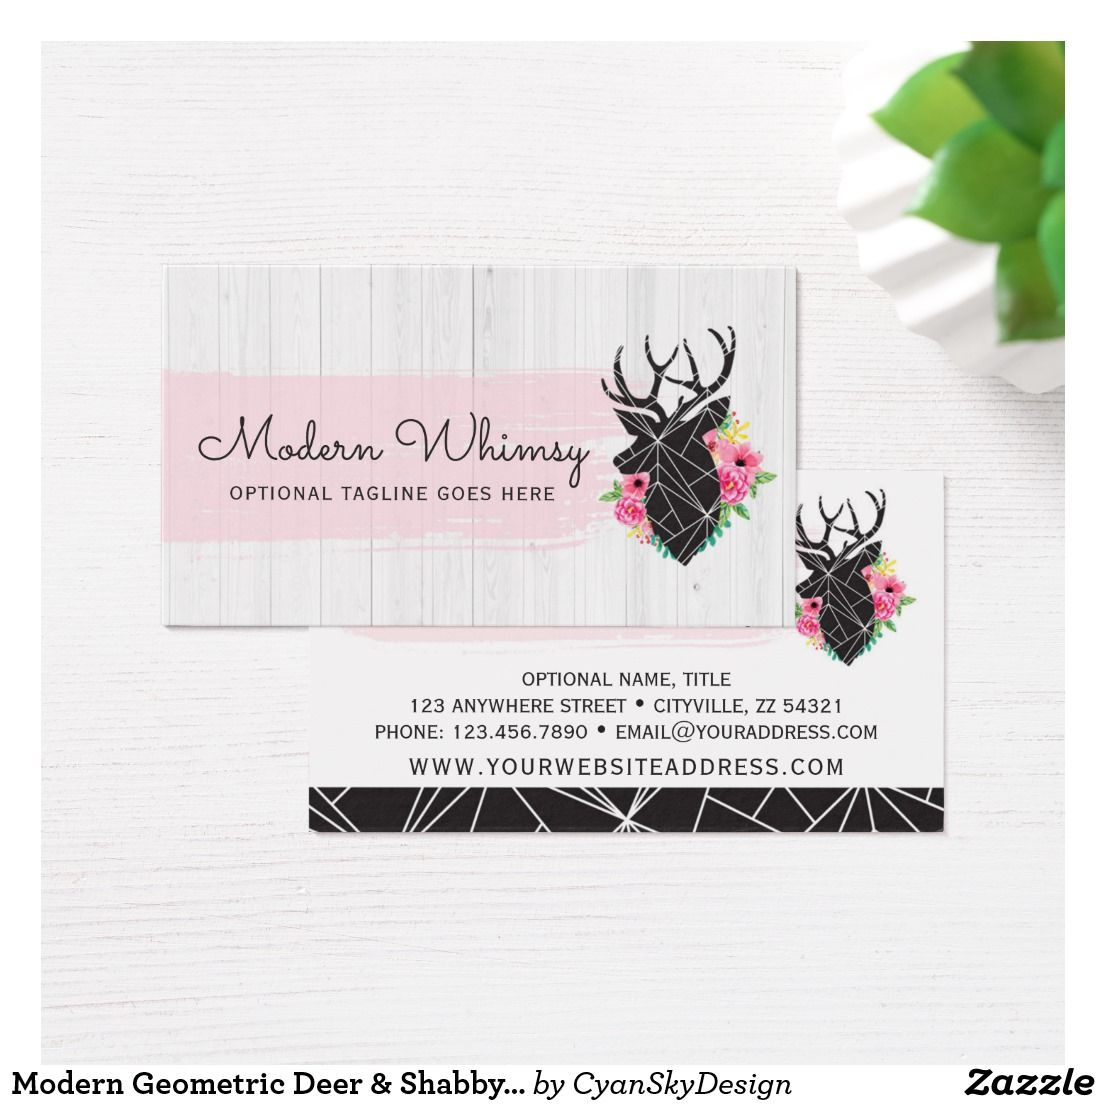 Modern geometric deer shabby roses rustic wood business card modern geometric deer shabby roses rustic wood business card branding marketing cyanskydesign reheart Image collections